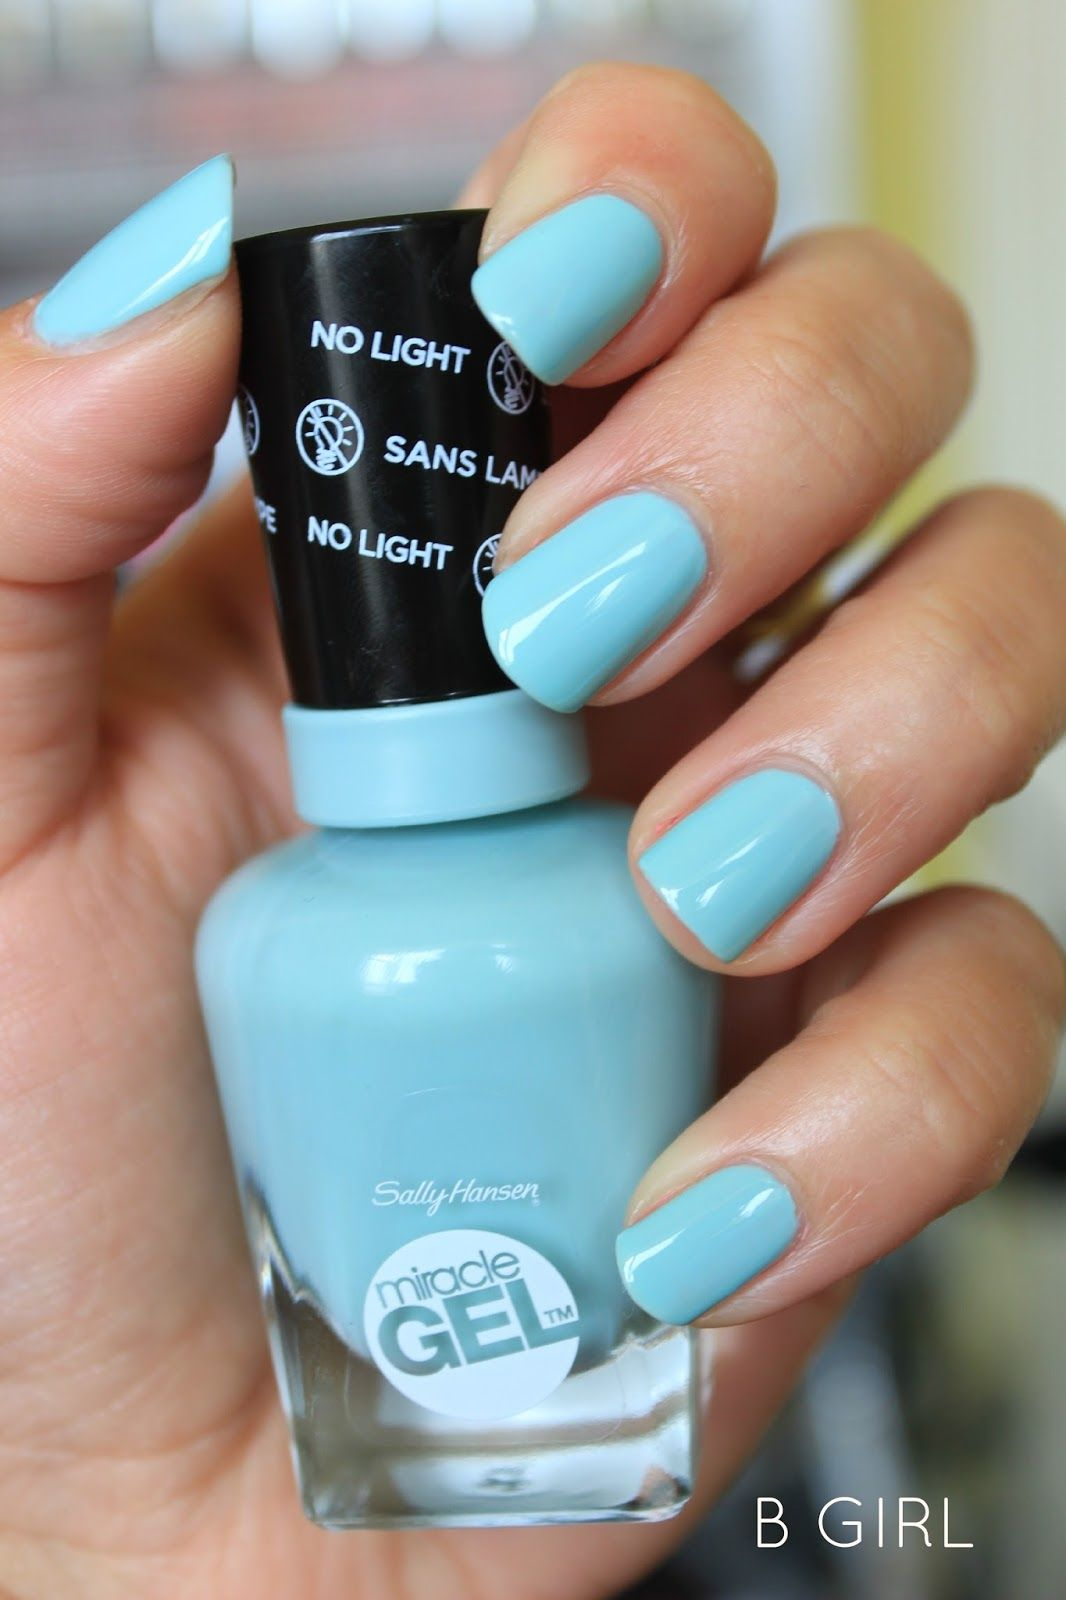 sally hansen miracle gel nail polish 'b girl' new favorite thing